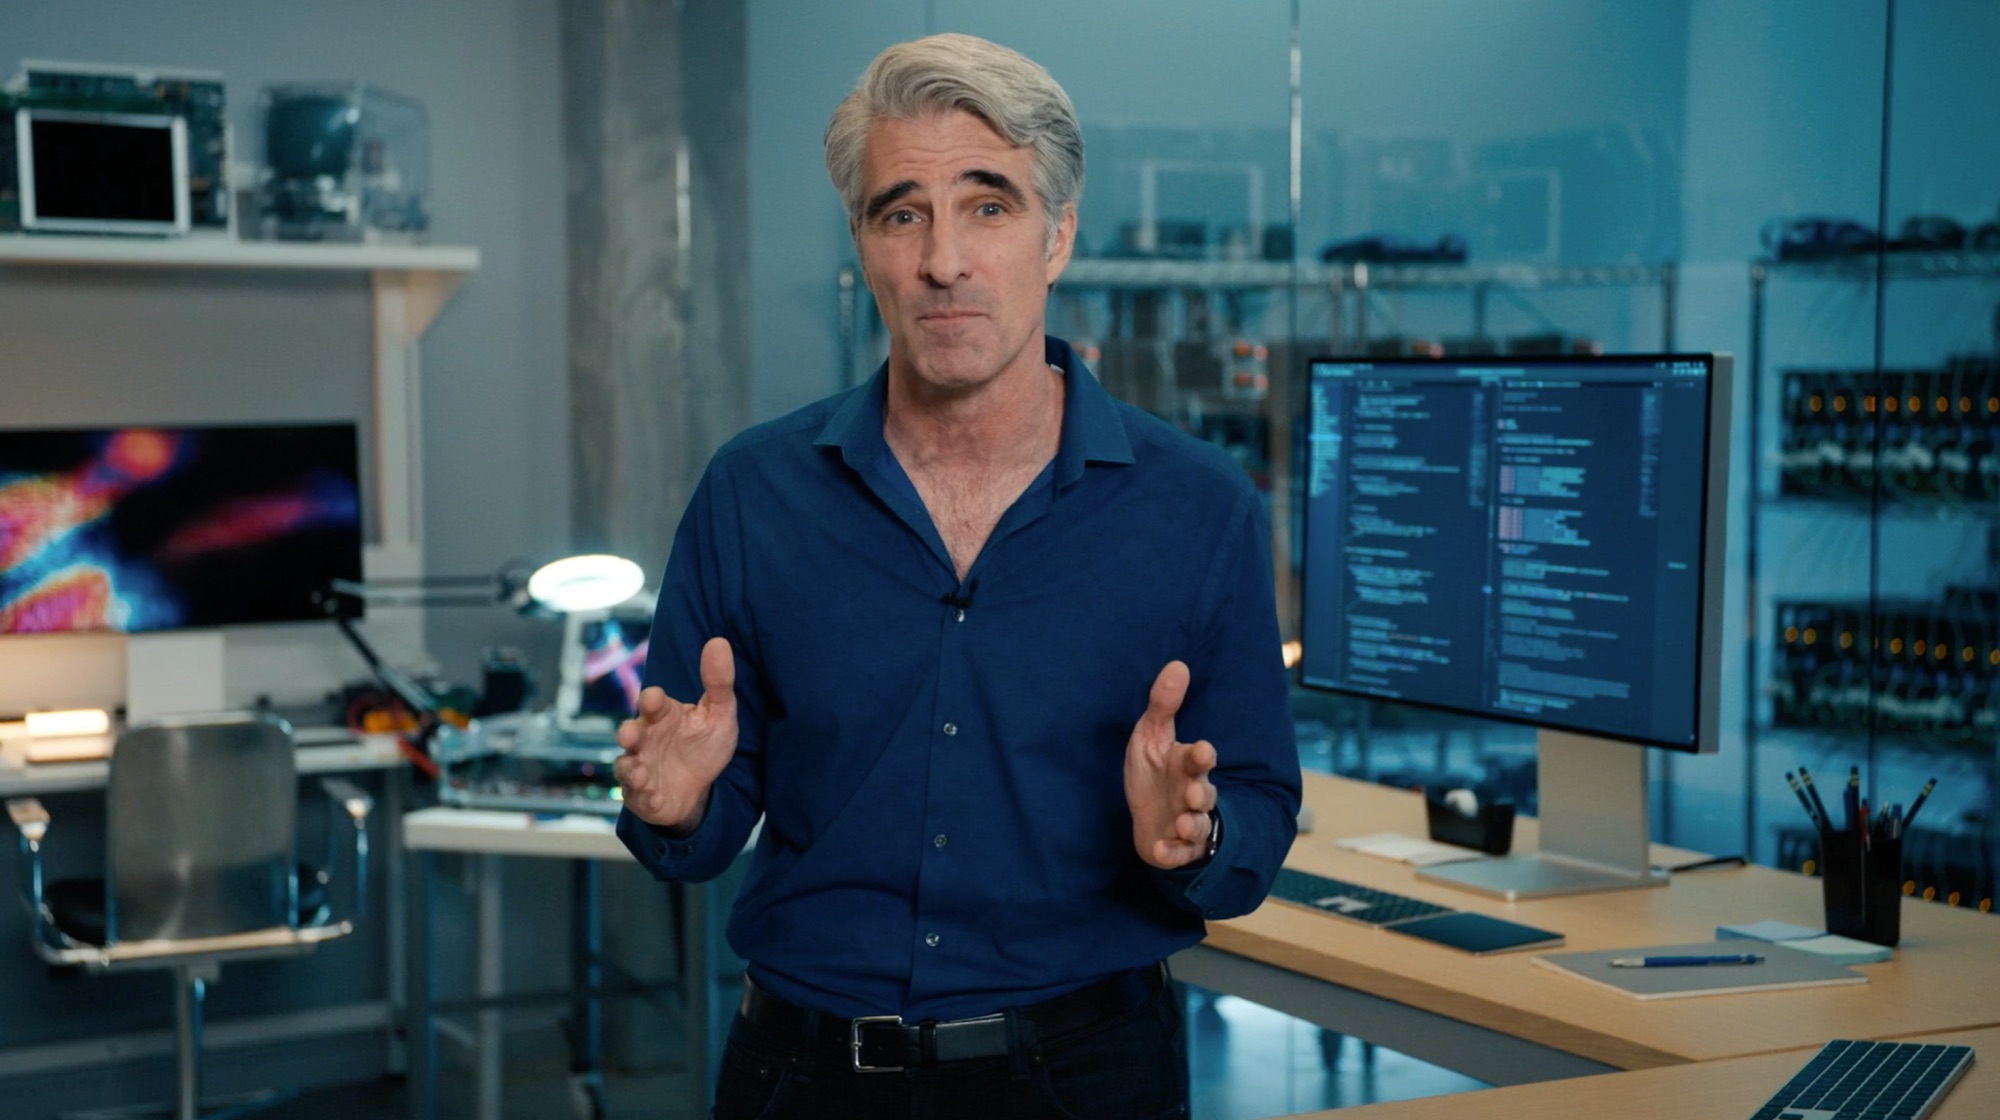 Craig Federighi in lab